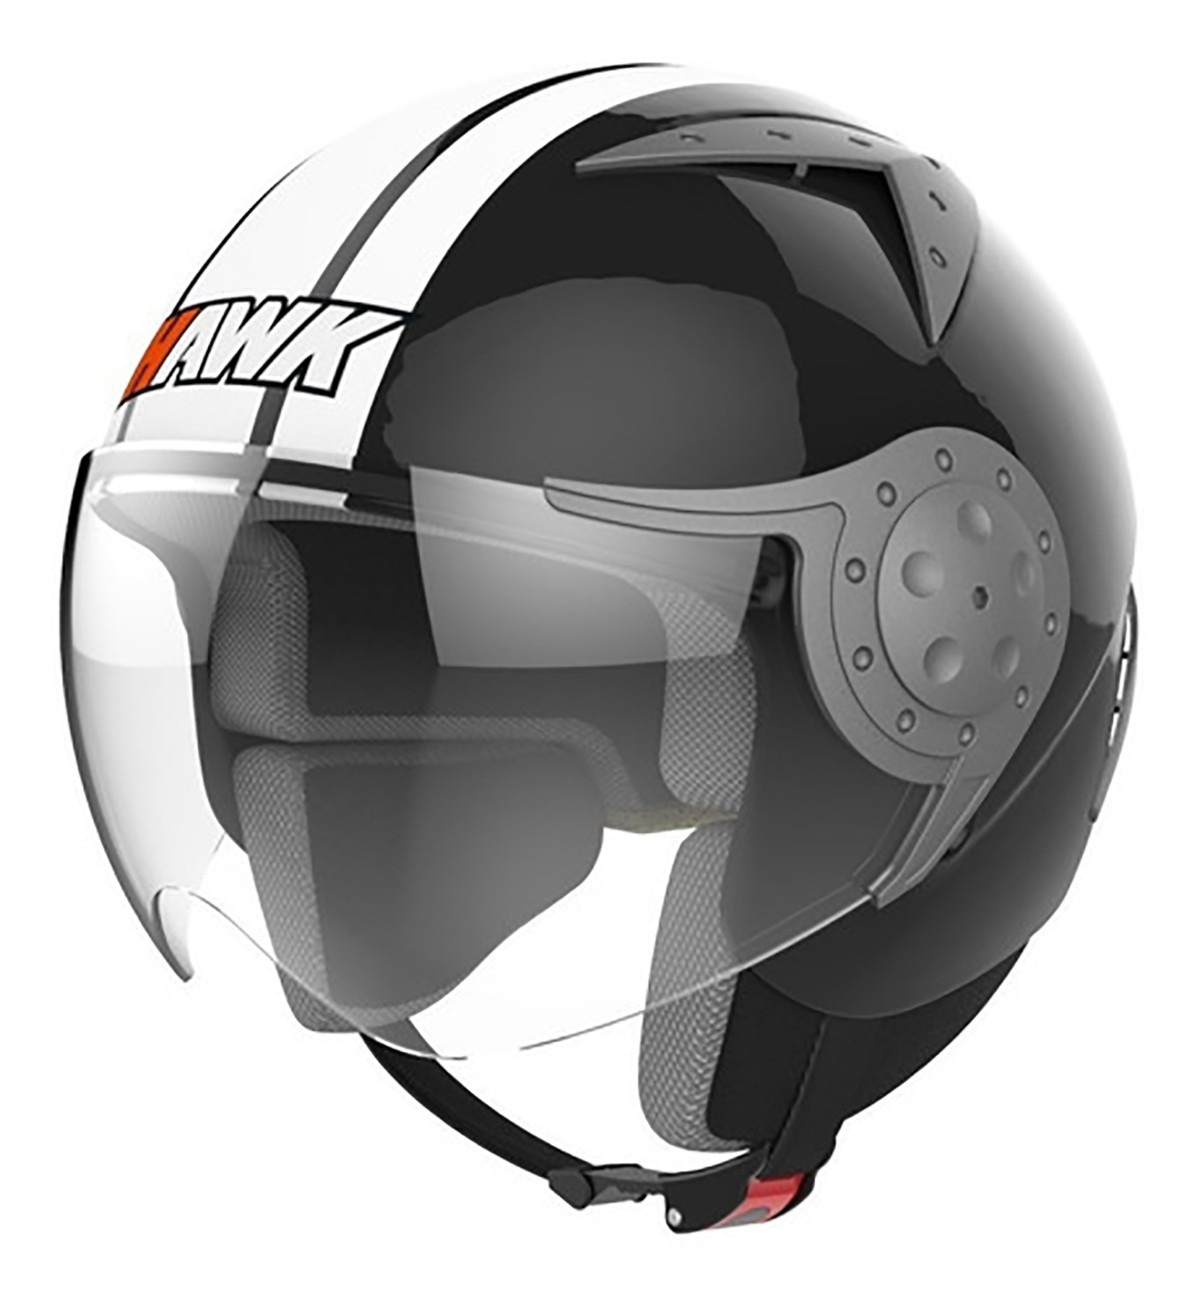 Casco Abierto Hawk Rs9 Negro Brillo